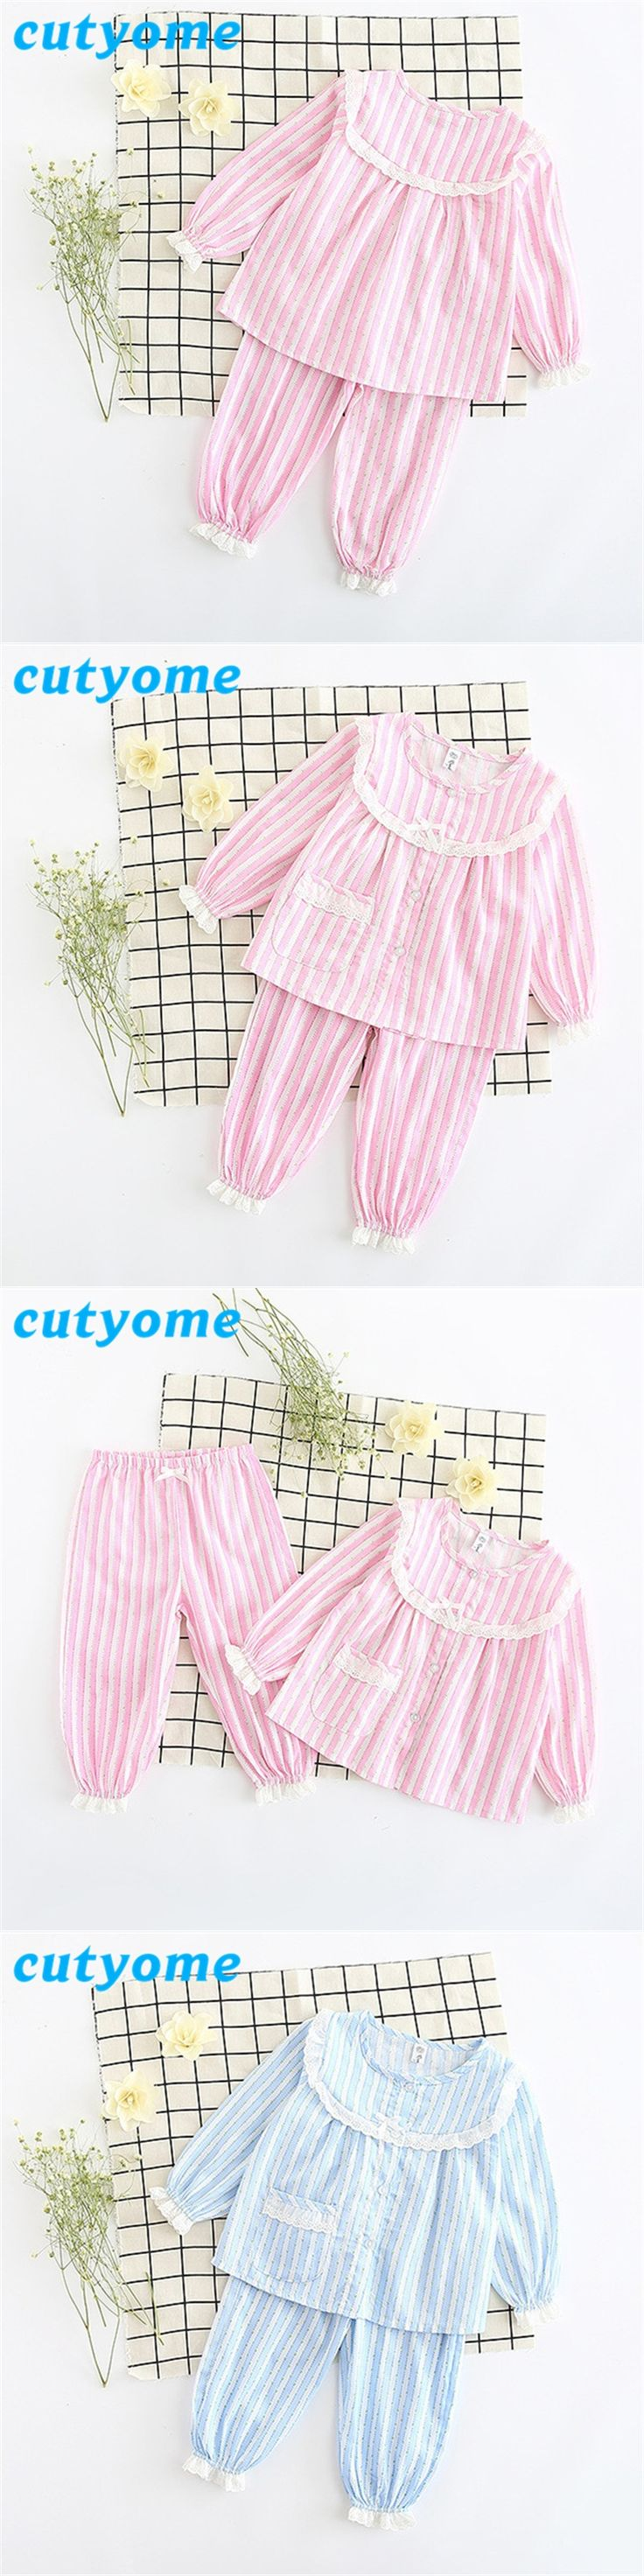 Autumn Children's Pijamas Set Cutyome Long Sleeve Floral Lace Striped Pyjamas For Toddlers Kids Baby Girls Nightwear Pajamas Set